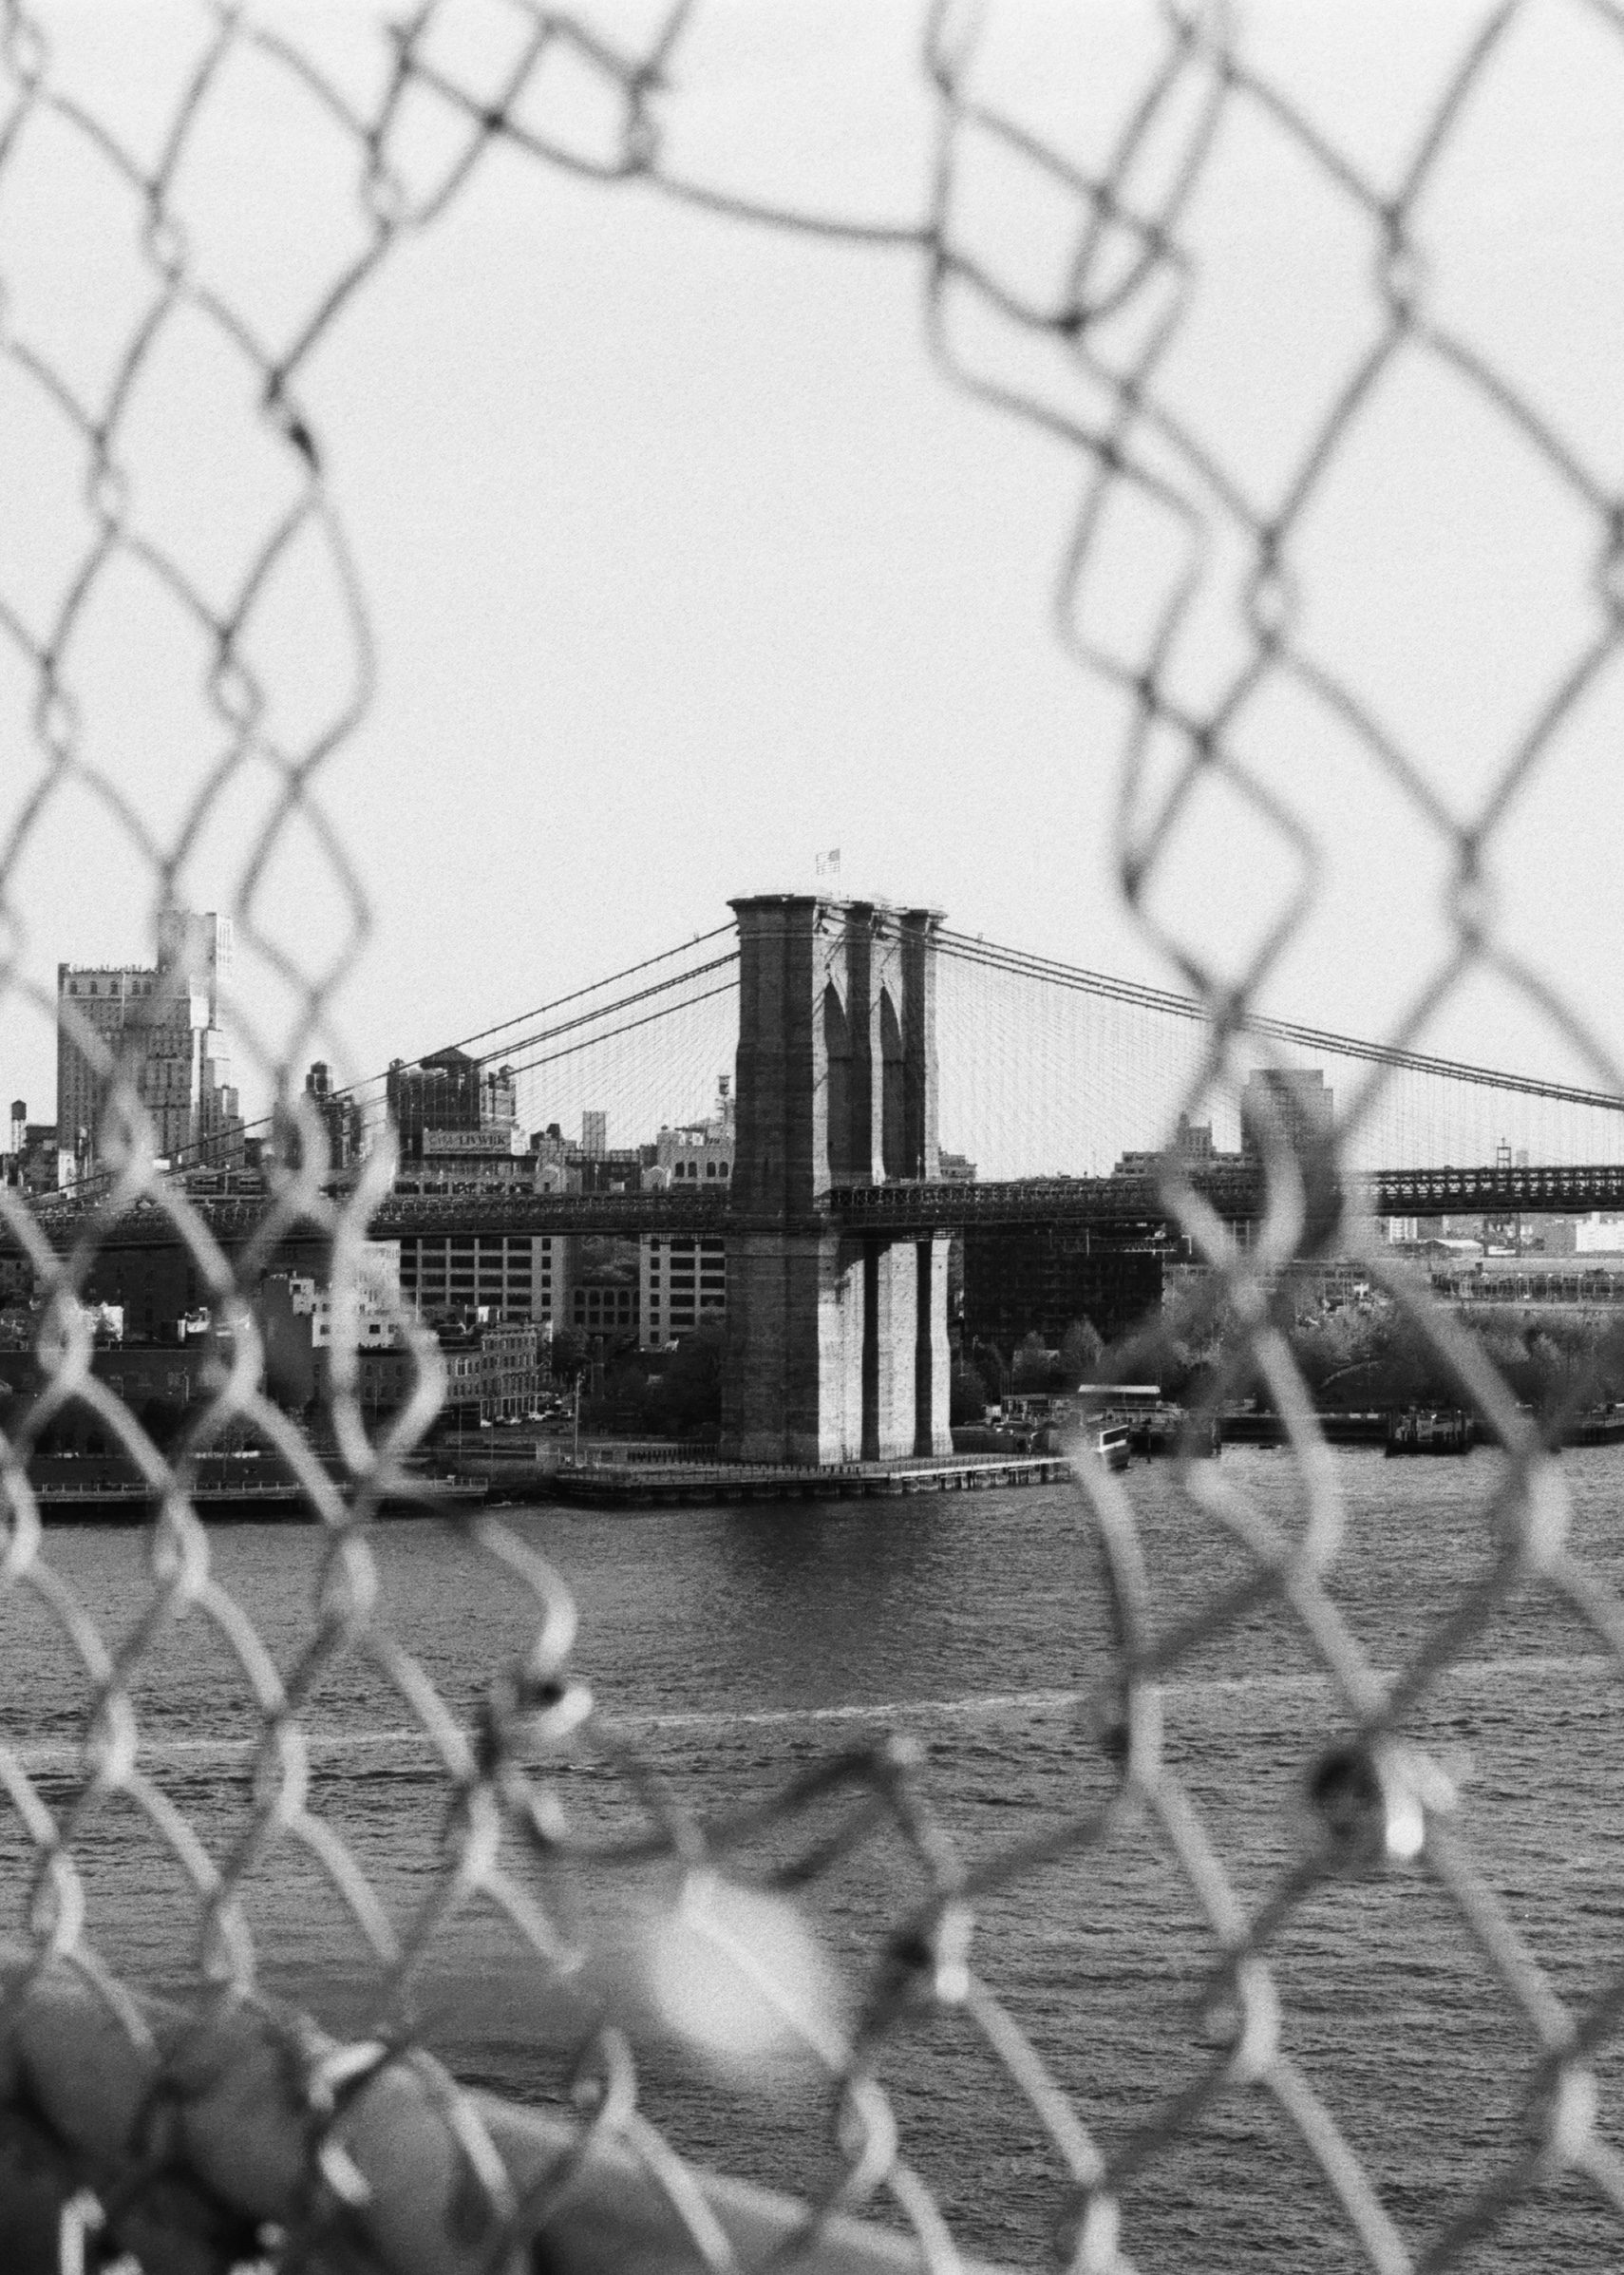 Brooklyn Bridge through the wire on HP5 black and white film by Louis Kassam